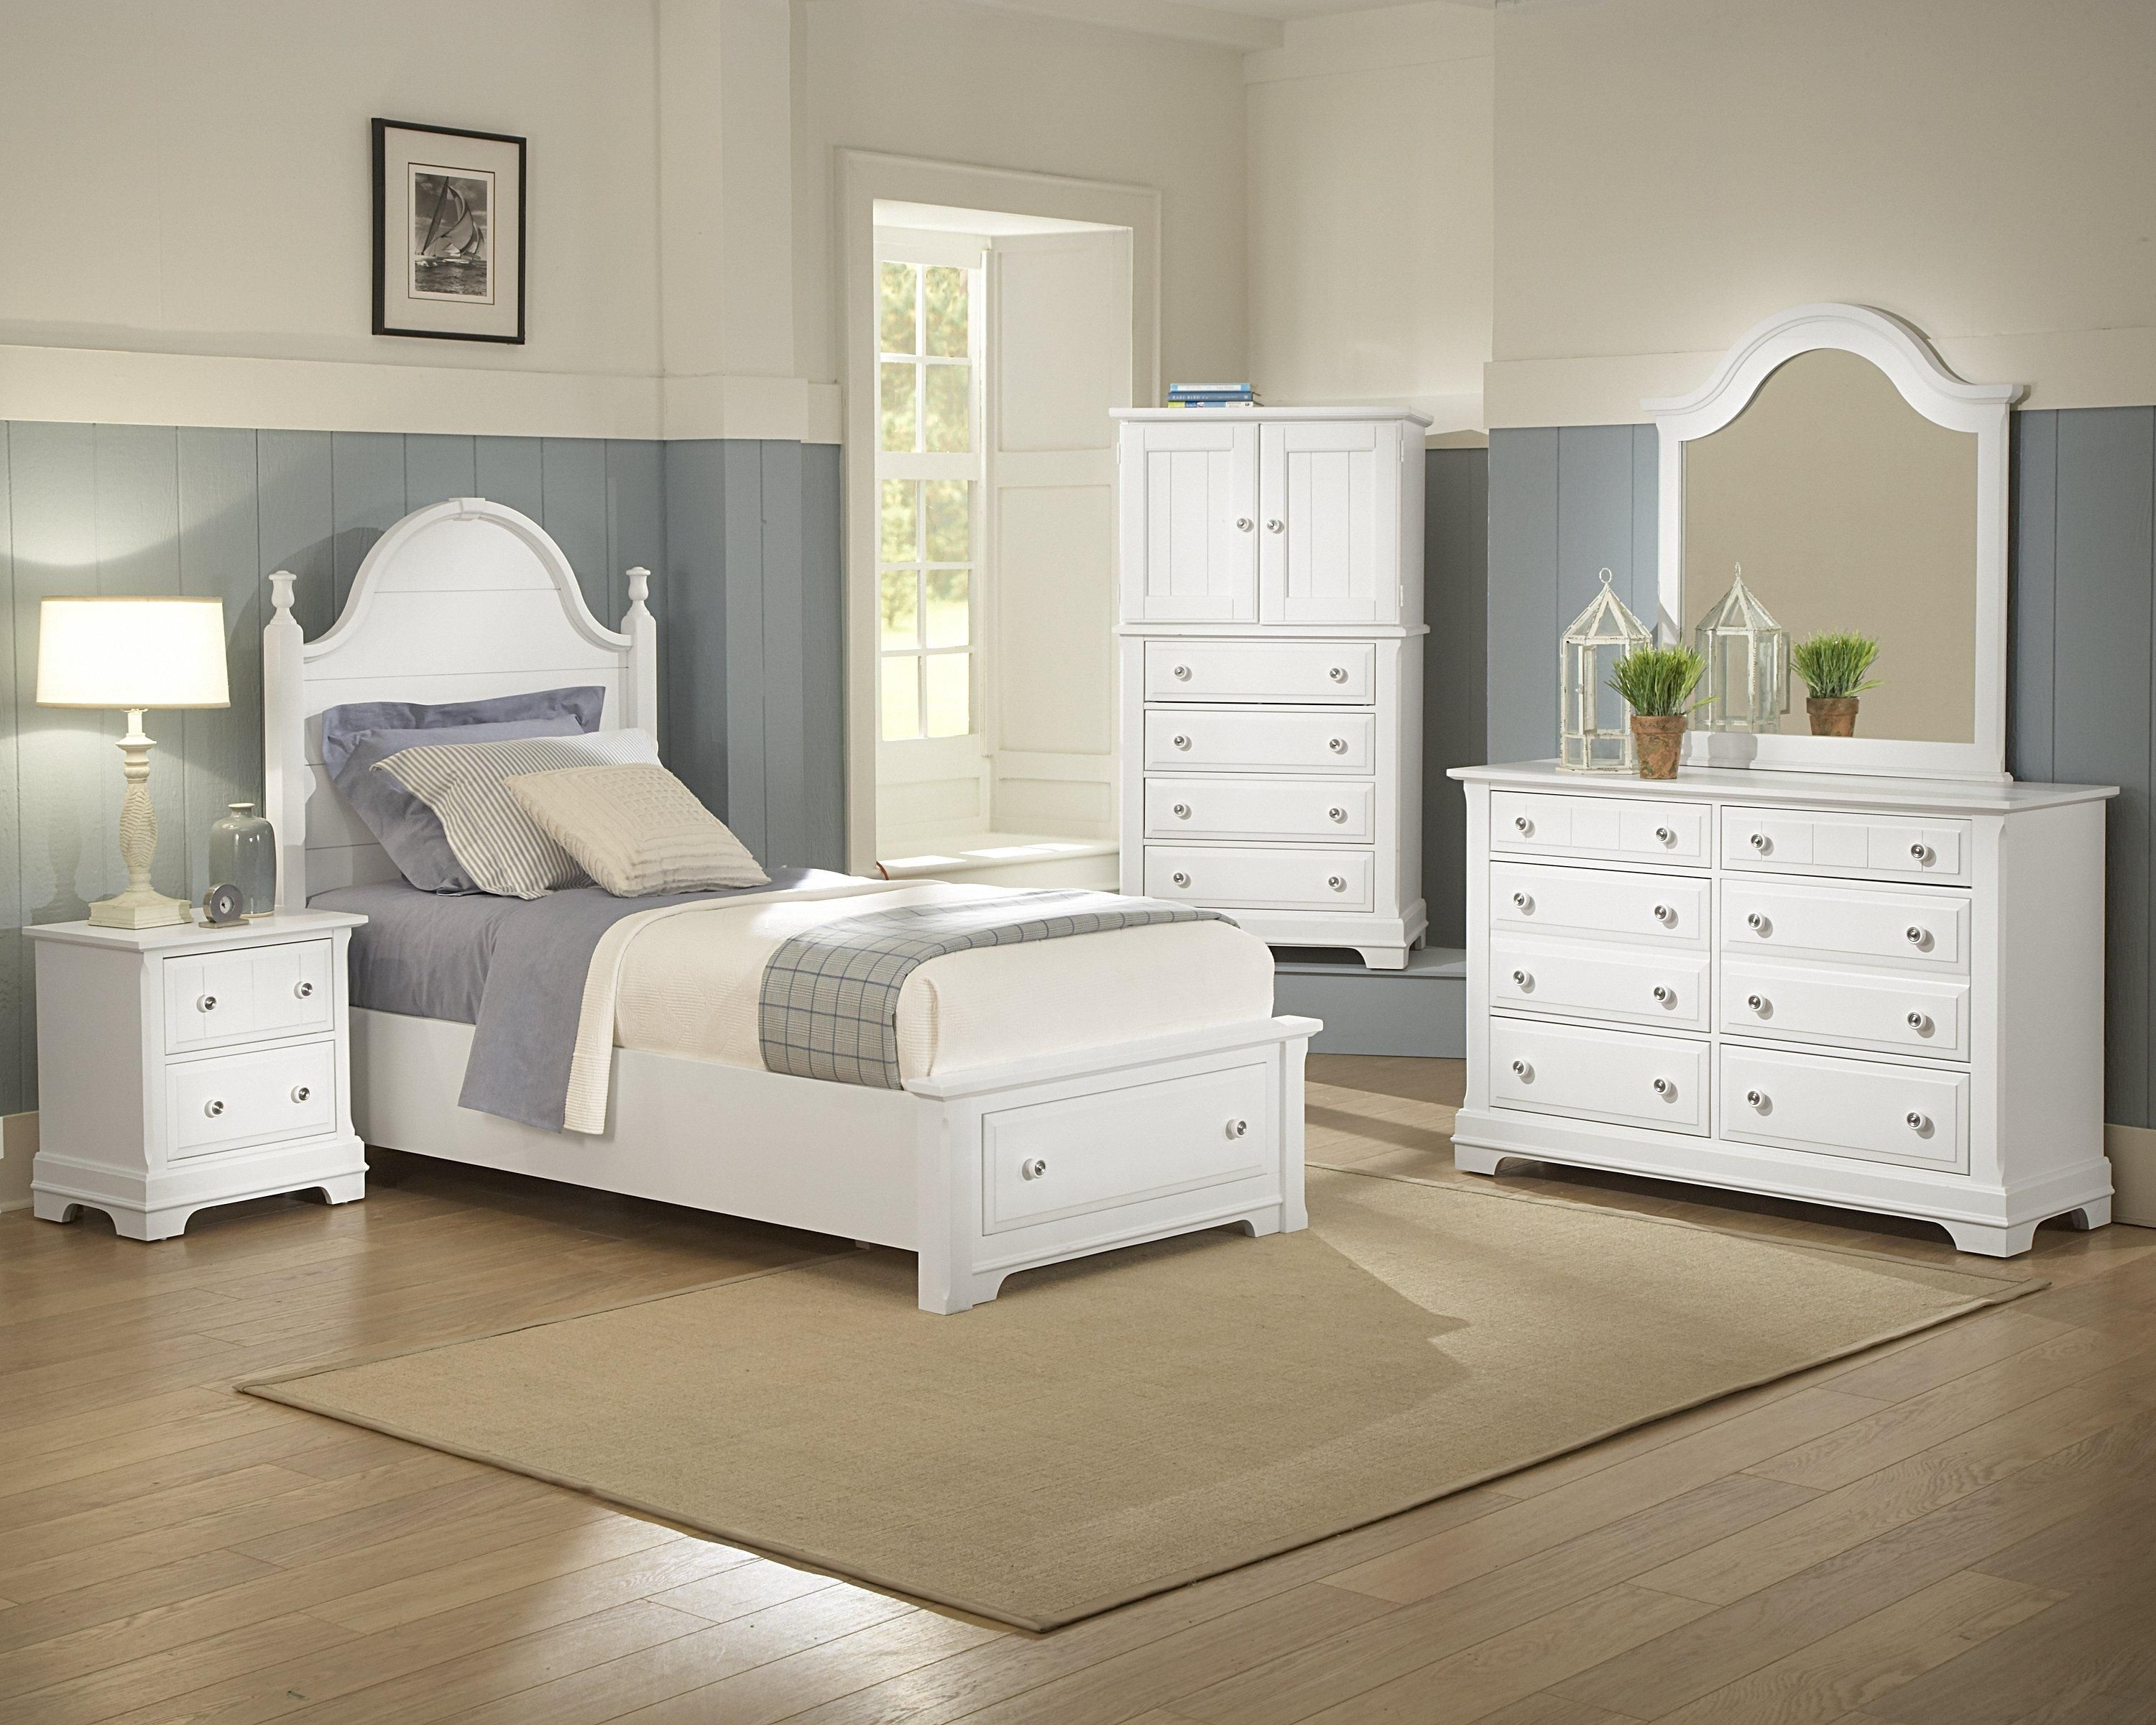 Vaughn Bassett Furniture: Cottage Collection Featuring Panel Storage Bed,  Night Stand, Vanity Chest, Dresser And Mirror. #homedecor #children #white